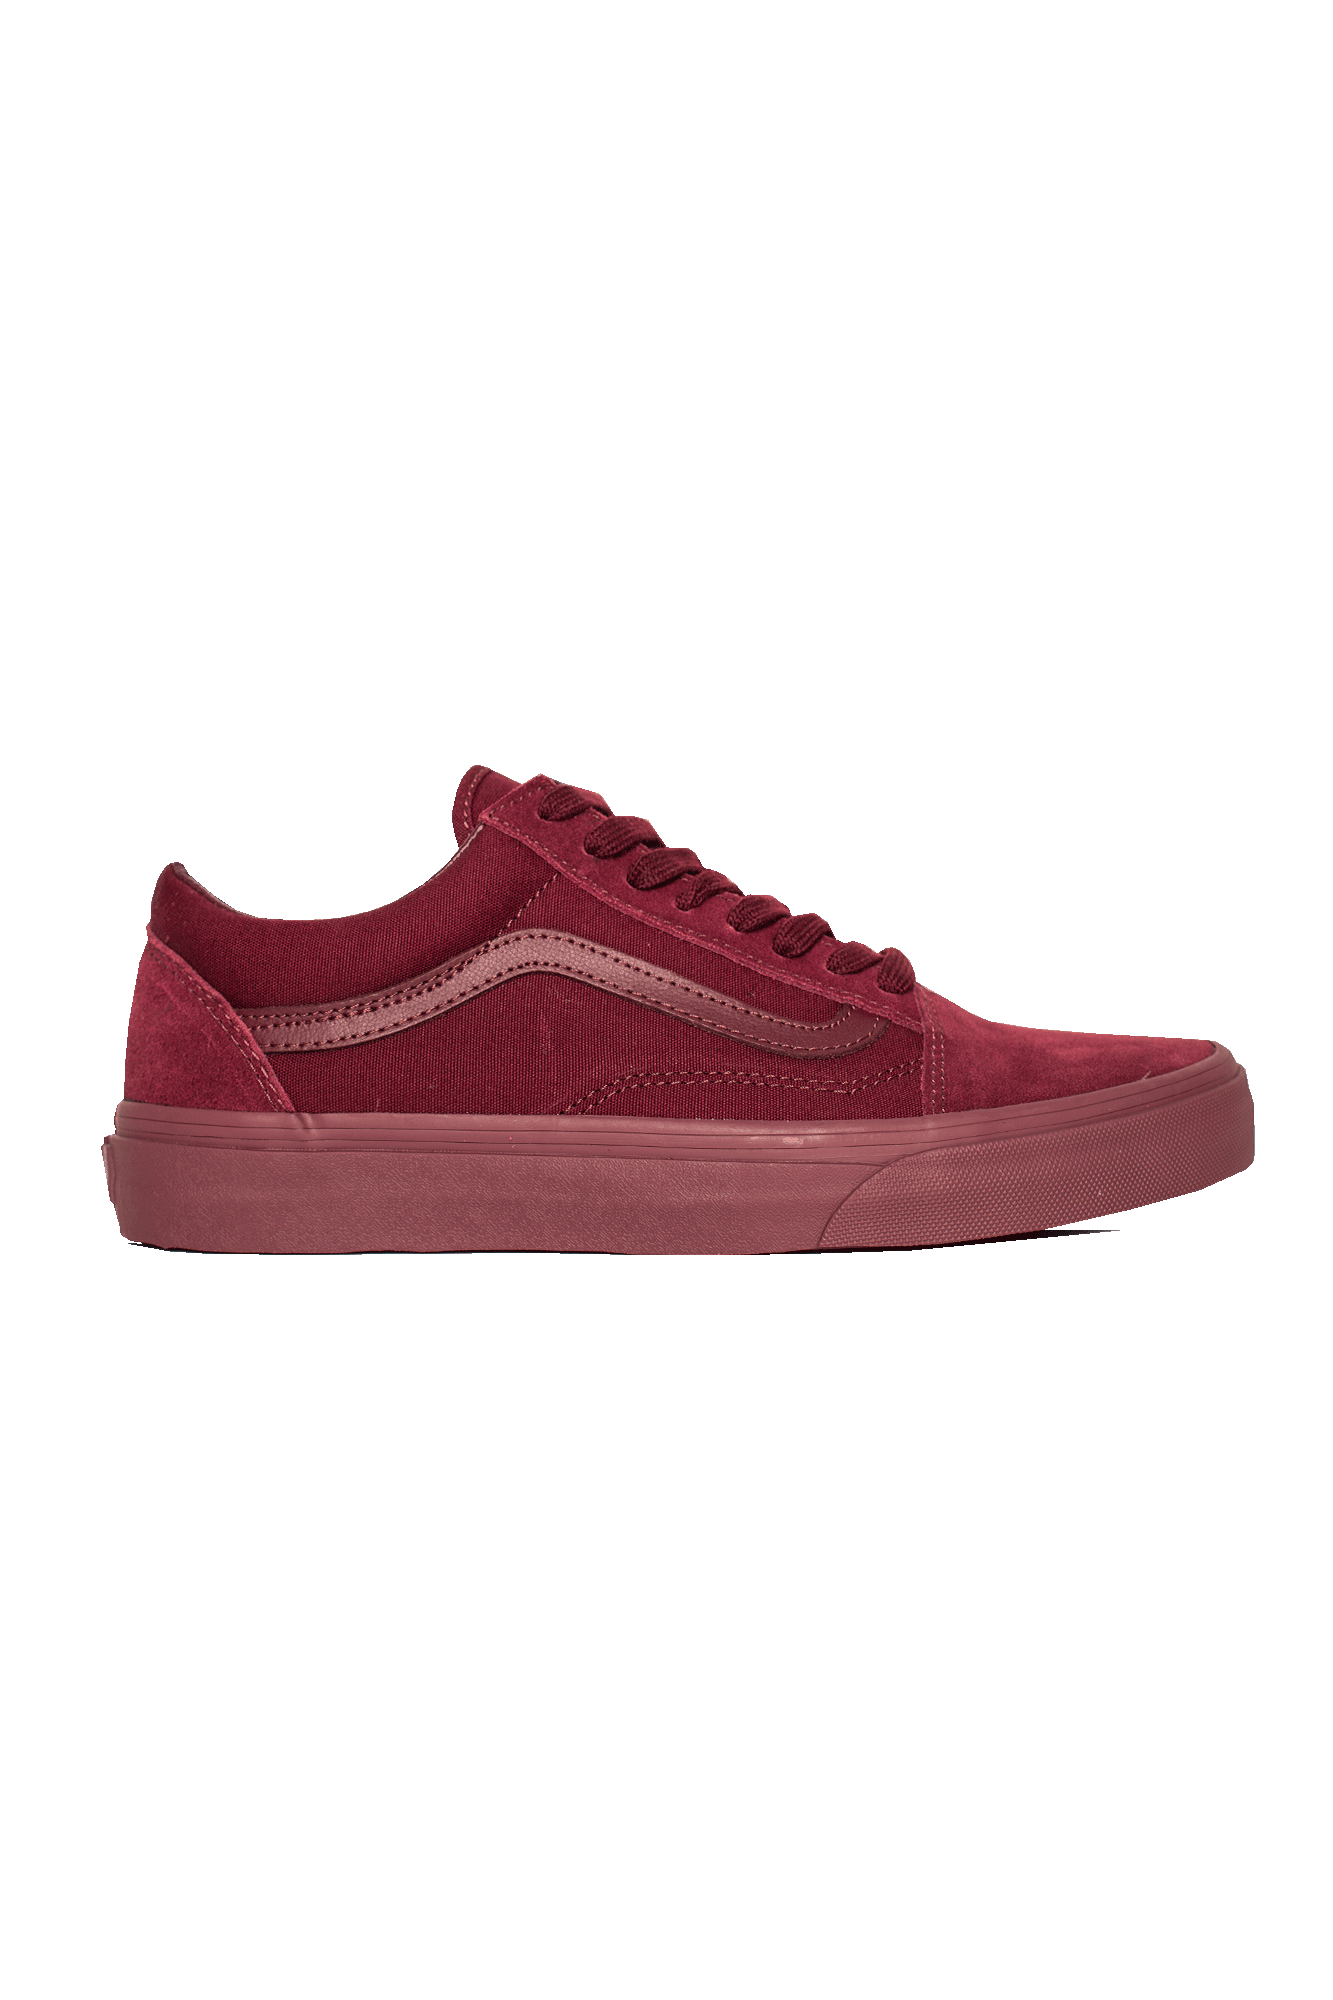 Vans Sneakers Old Skool Mono Red Z9JUW#000#C0012#10,5 One